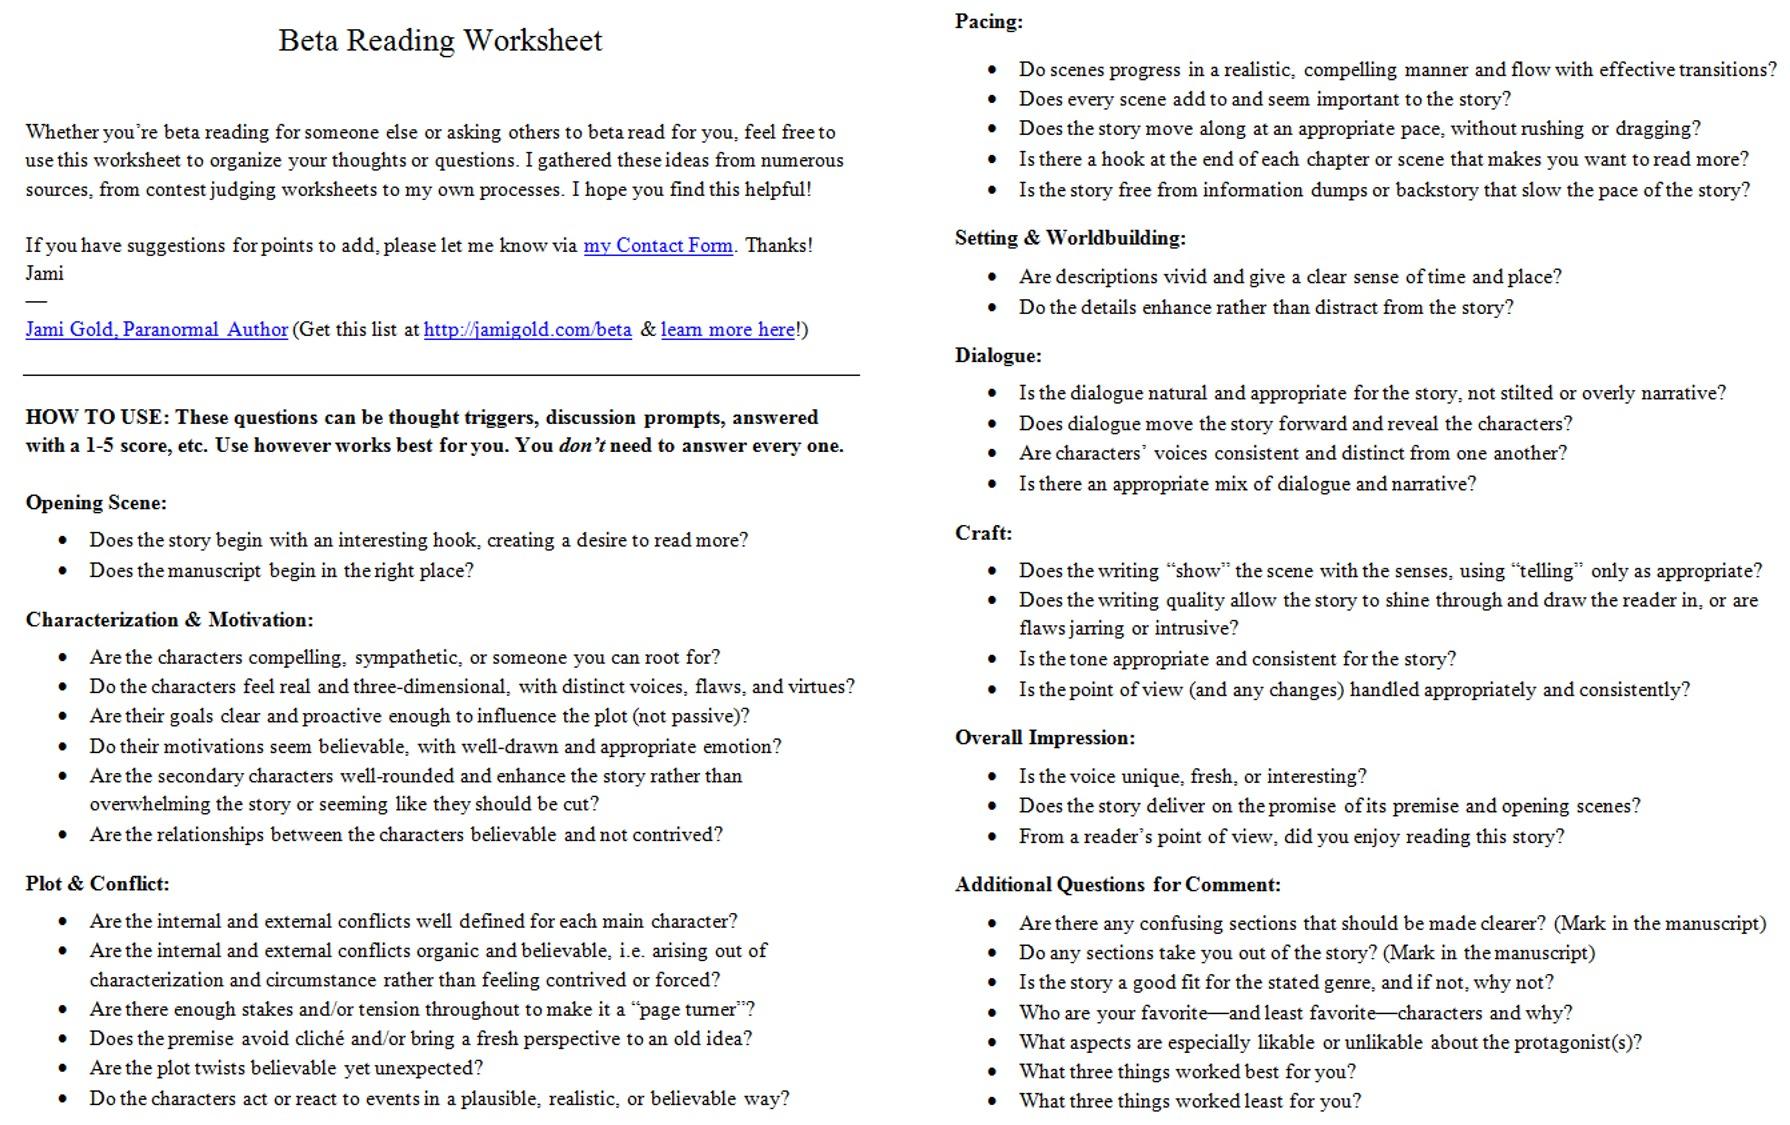 Weirdmailus  Winning Worksheets For Writers  Jami Gold Paranormal Author With Likable Screen Shot Of The Twopage Beta Reading Worksheet With Nice Velocity And Acceleration Worksheet Also Worksheet Dihybrid Crosses In Addition Complementary Angles Worksheet And Th Grade Writing Worksheets As Well As Superhero Worksheets Additionally  Year Old Worksheets From Jamigoldcom With Weirdmailus  Likable Worksheets For Writers  Jami Gold Paranormal Author With Nice Screen Shot Of The Twopage Beta Reading Worksheet And Winning Velocity And Acceleration Worksheet Also Worksheet Dihybrid Crosses In Addition Complementary Angles Worksheet From Jamigoldcom